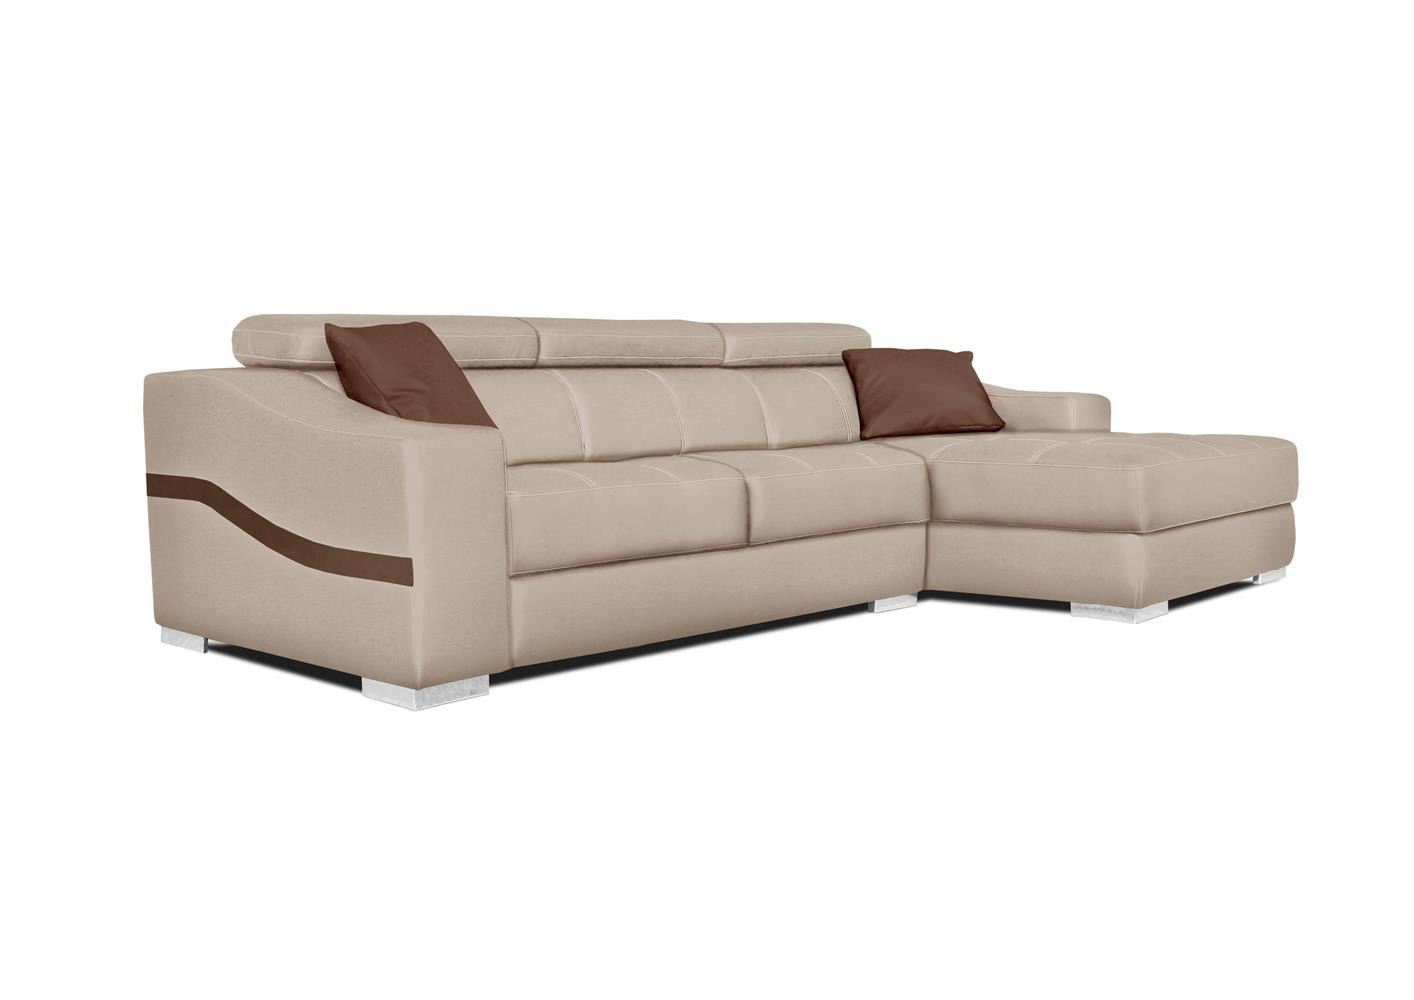 acheter votre canap chaise longue bicolor pvc beige et marron chez simeuble. Black Bedroom Furniture Sets. Home Design Ideas